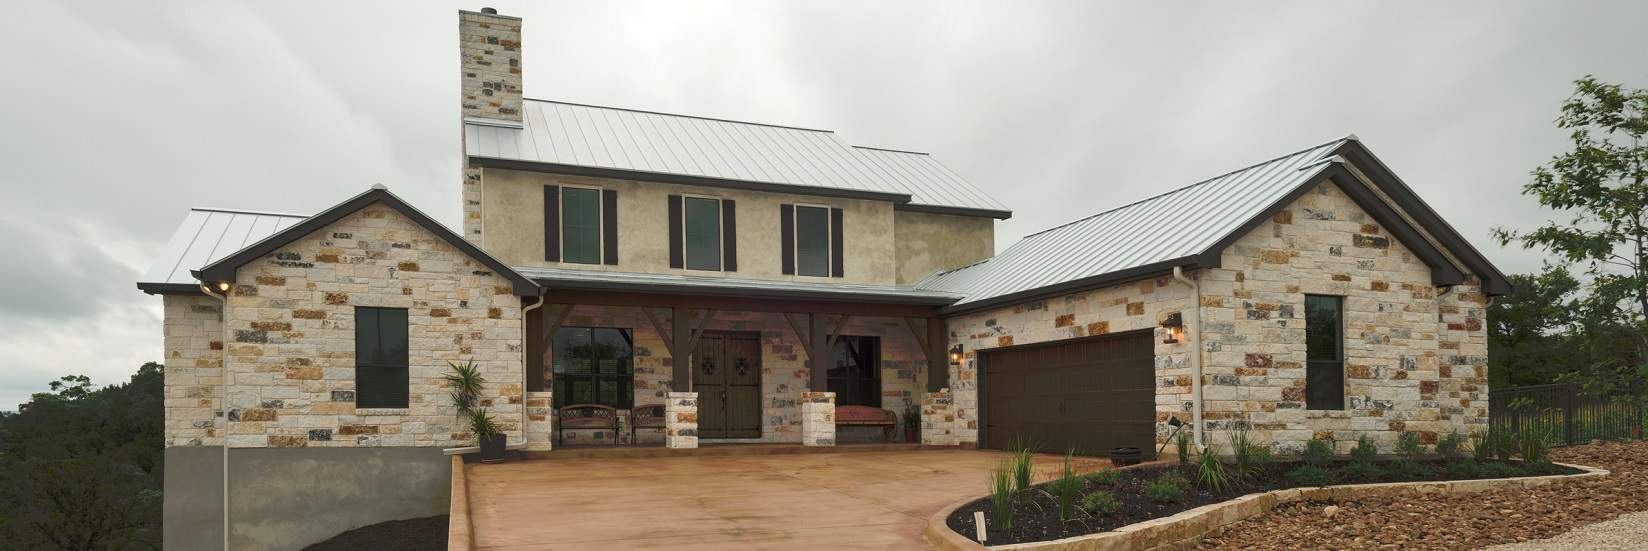 Custom Home Builder New Braunfels San Antonio Hill: custom home plans texas